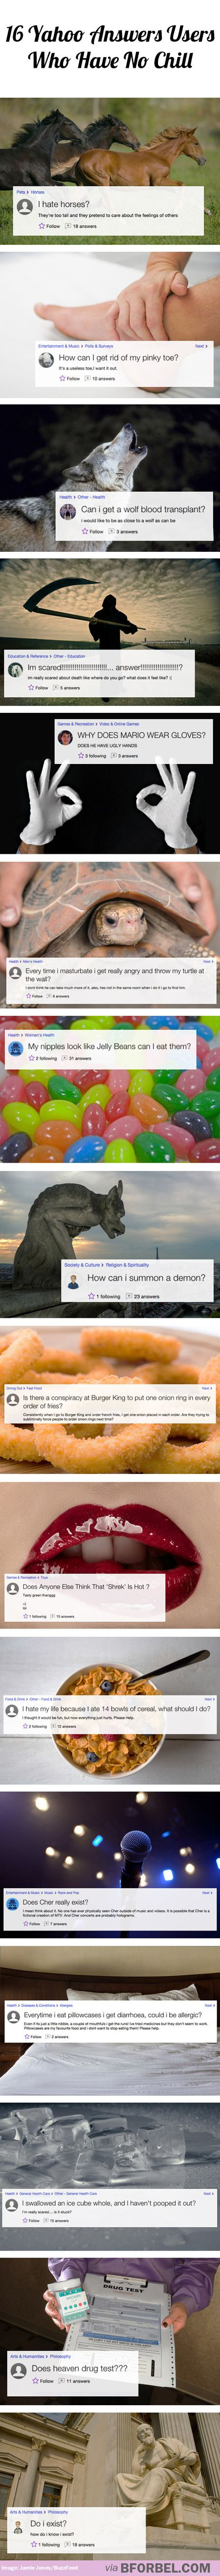 17 Best Ideas About Yahoo Answers Funny On Pinterest Yahoo How To Delete